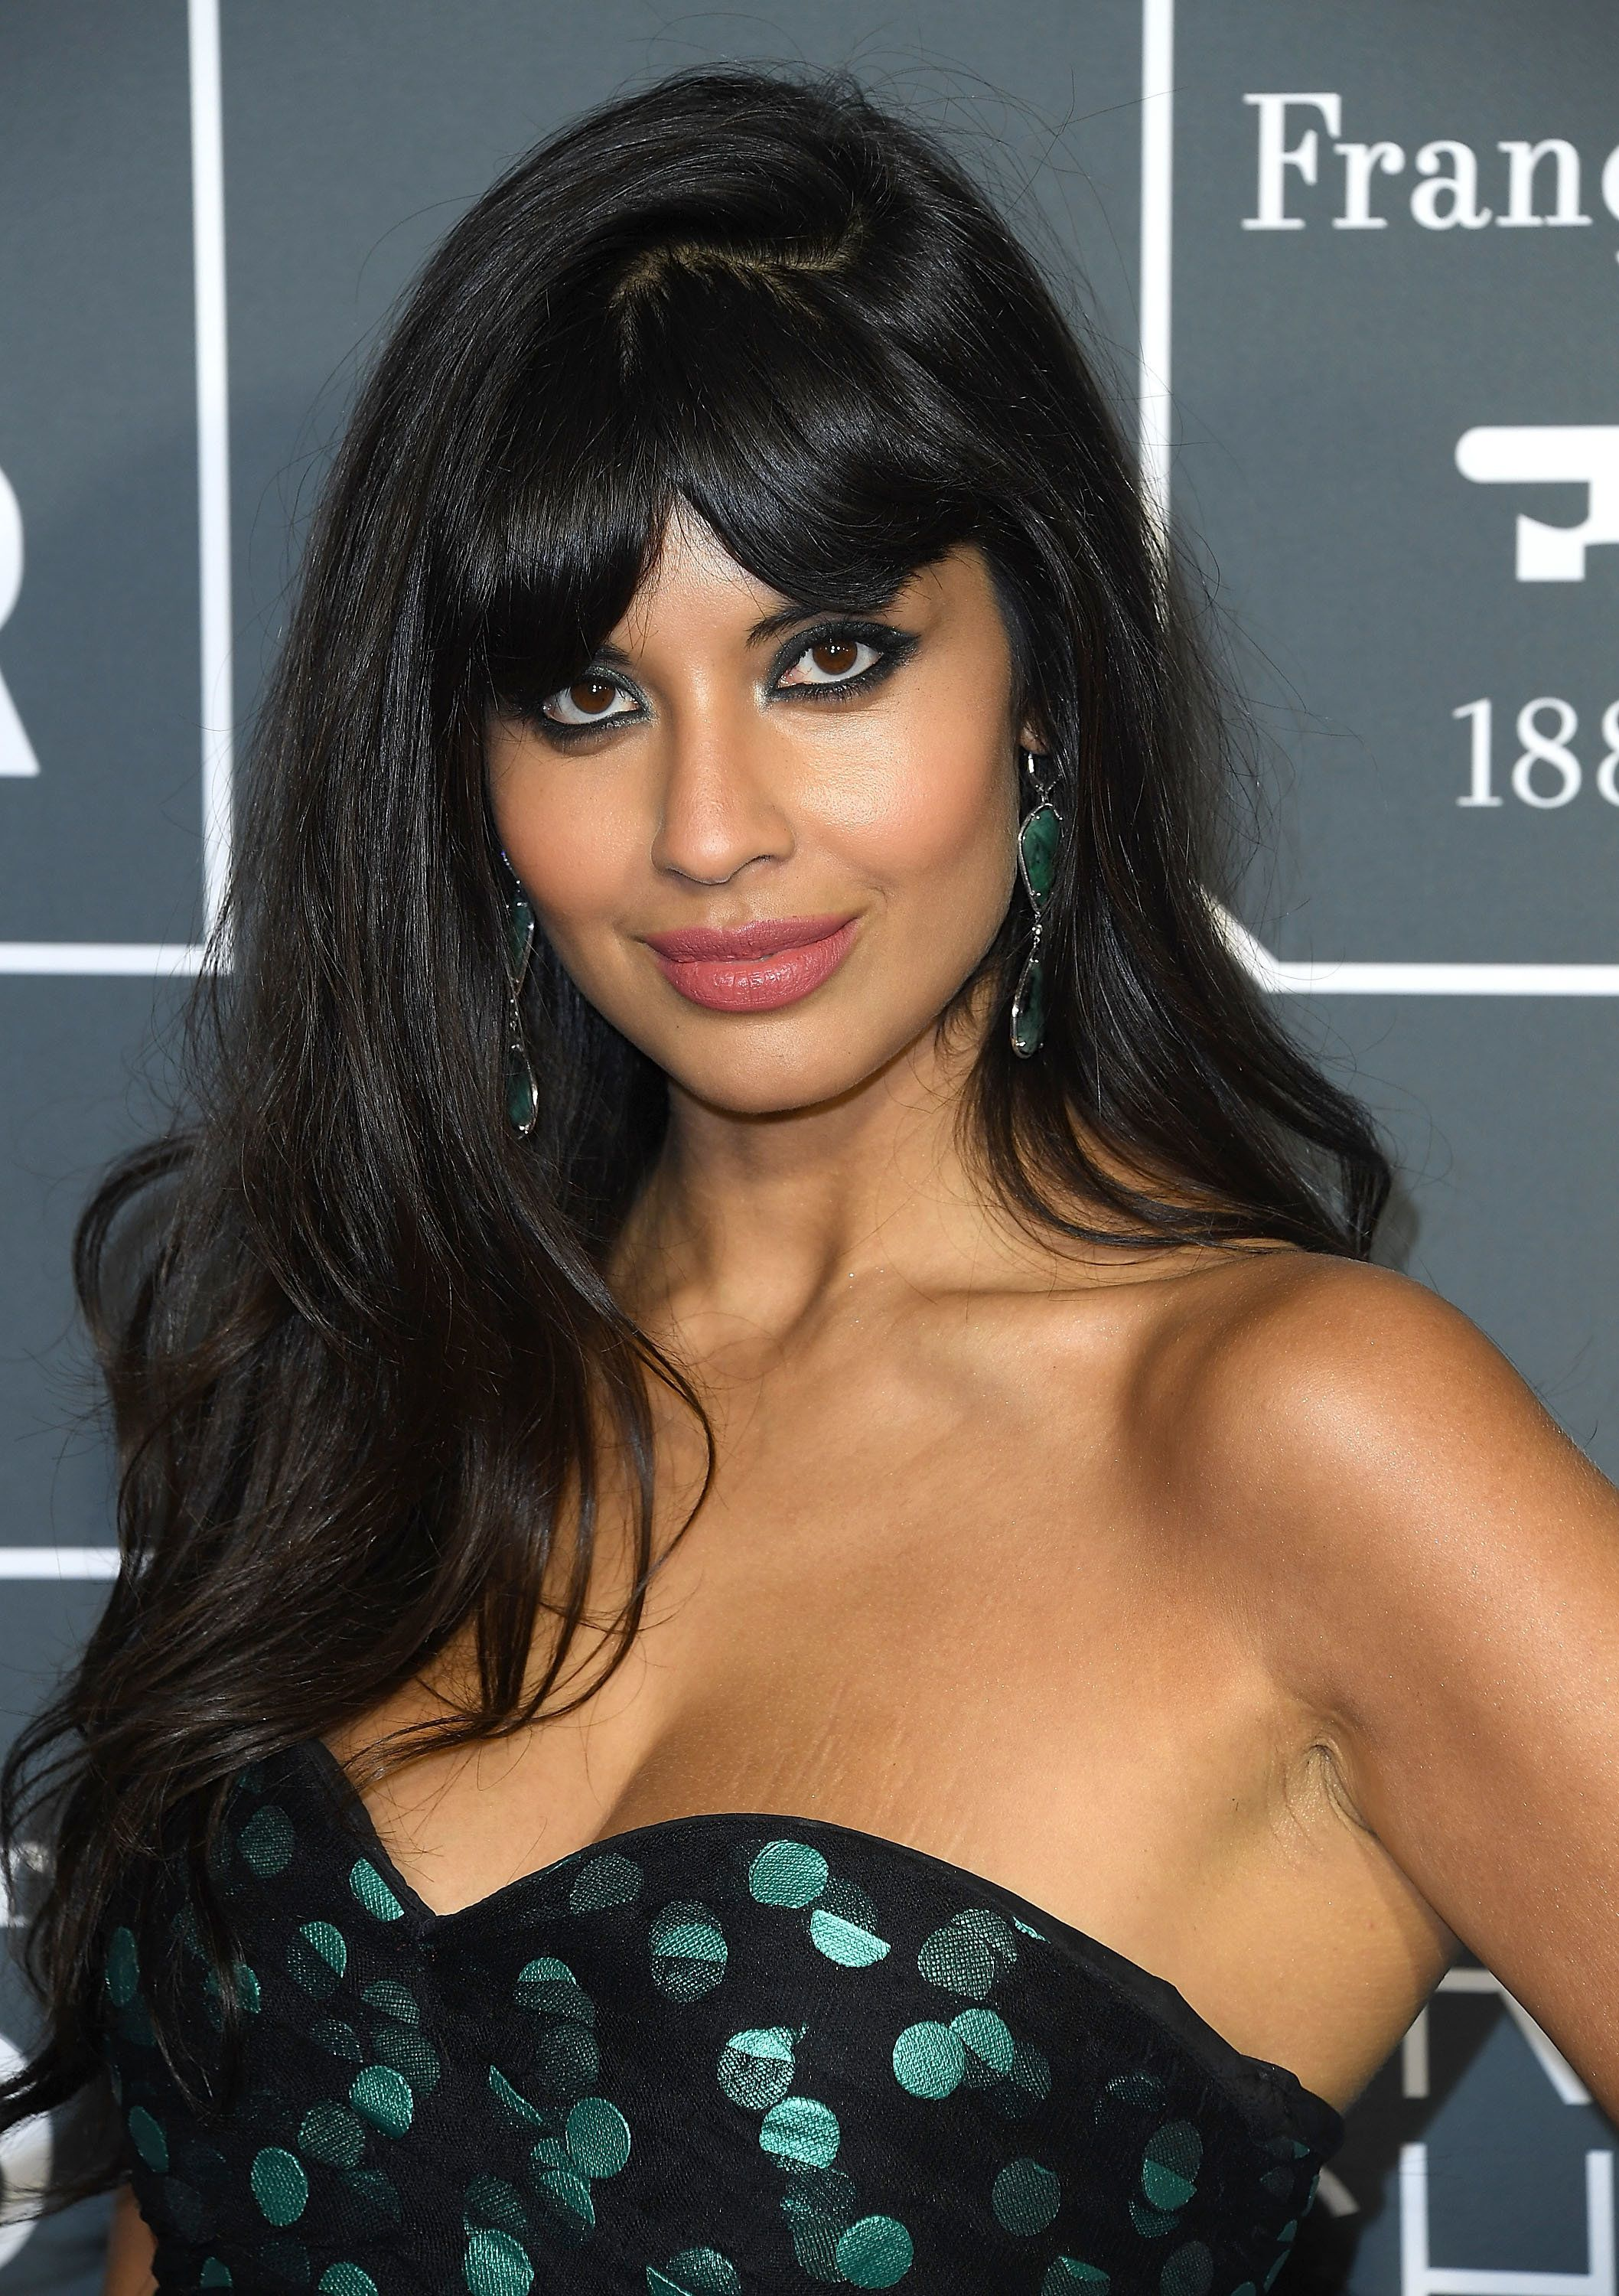 SANTA MONICA, CA - JANUARY 13:  Jameela Jamil arrives at the The 24th Annual Critics' Choice Awards  attends The 24th Annual Critics' Choice Awards at Barker Hangar on January 13, 2019 in Santa Monica, California.  (Photo by Steve Granitz/WireImage)